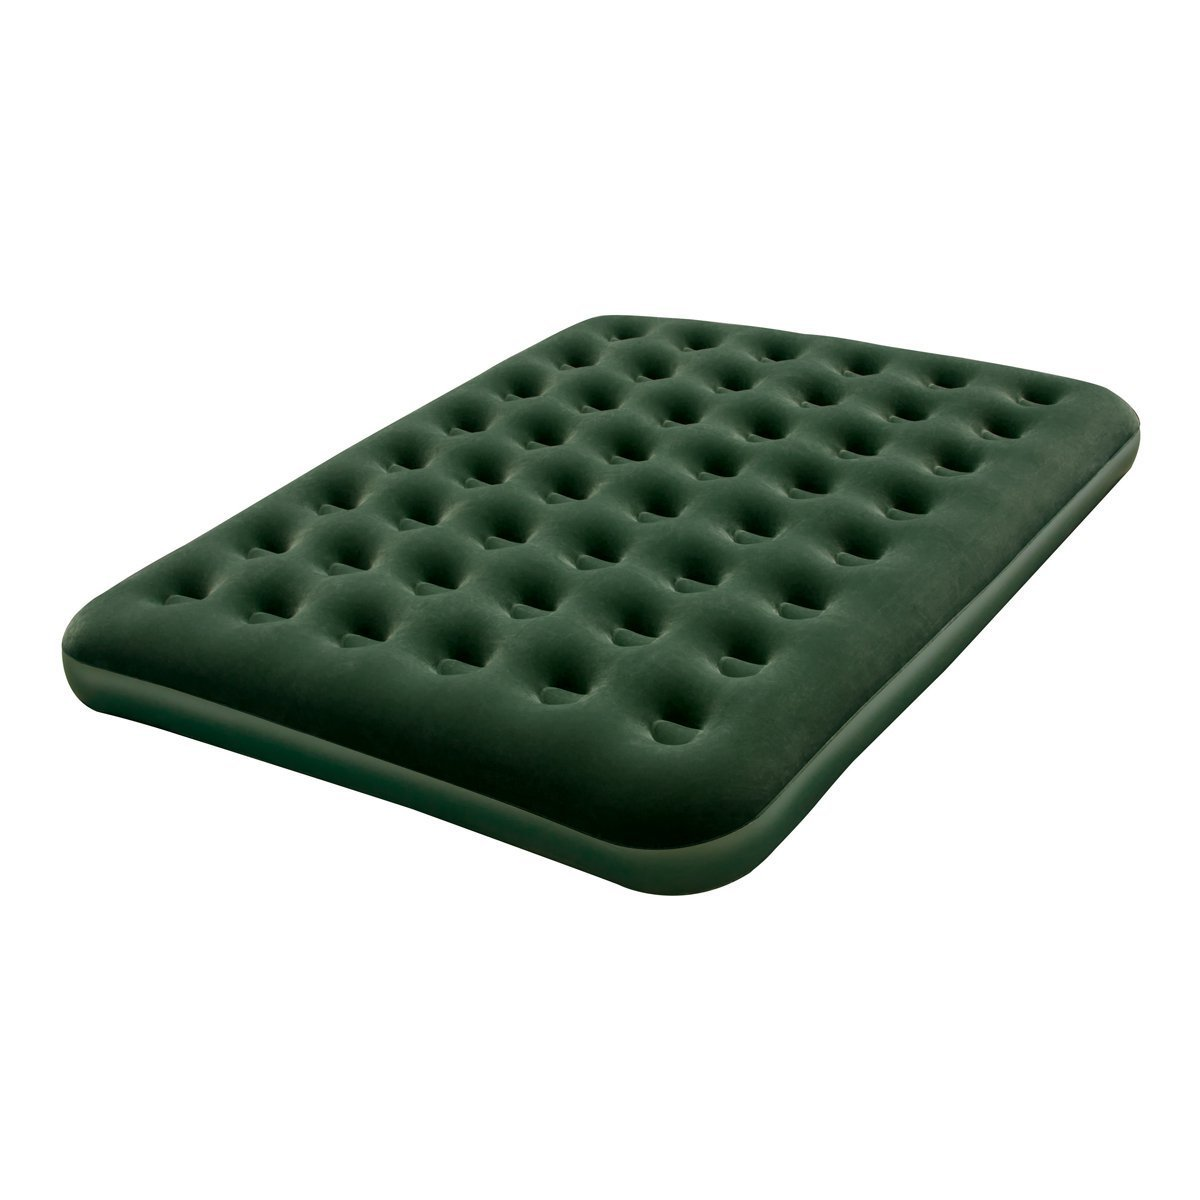 Flocked Inflatable Air Bed Mattress - Queen, Sturdy pre-t...